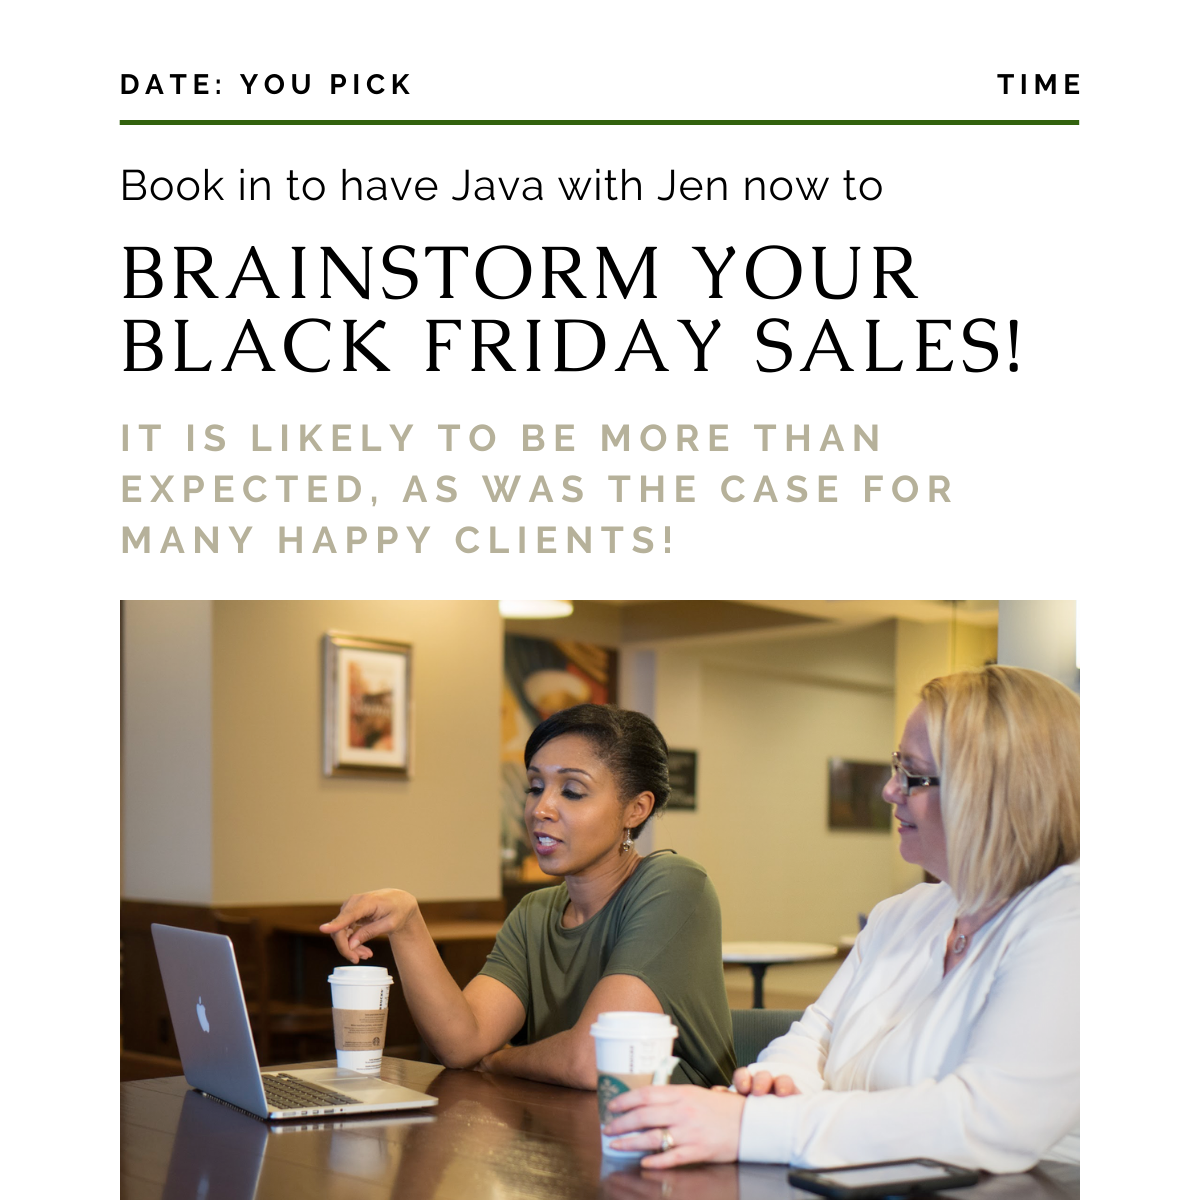 Brainstorm Your Black Friday Sales!